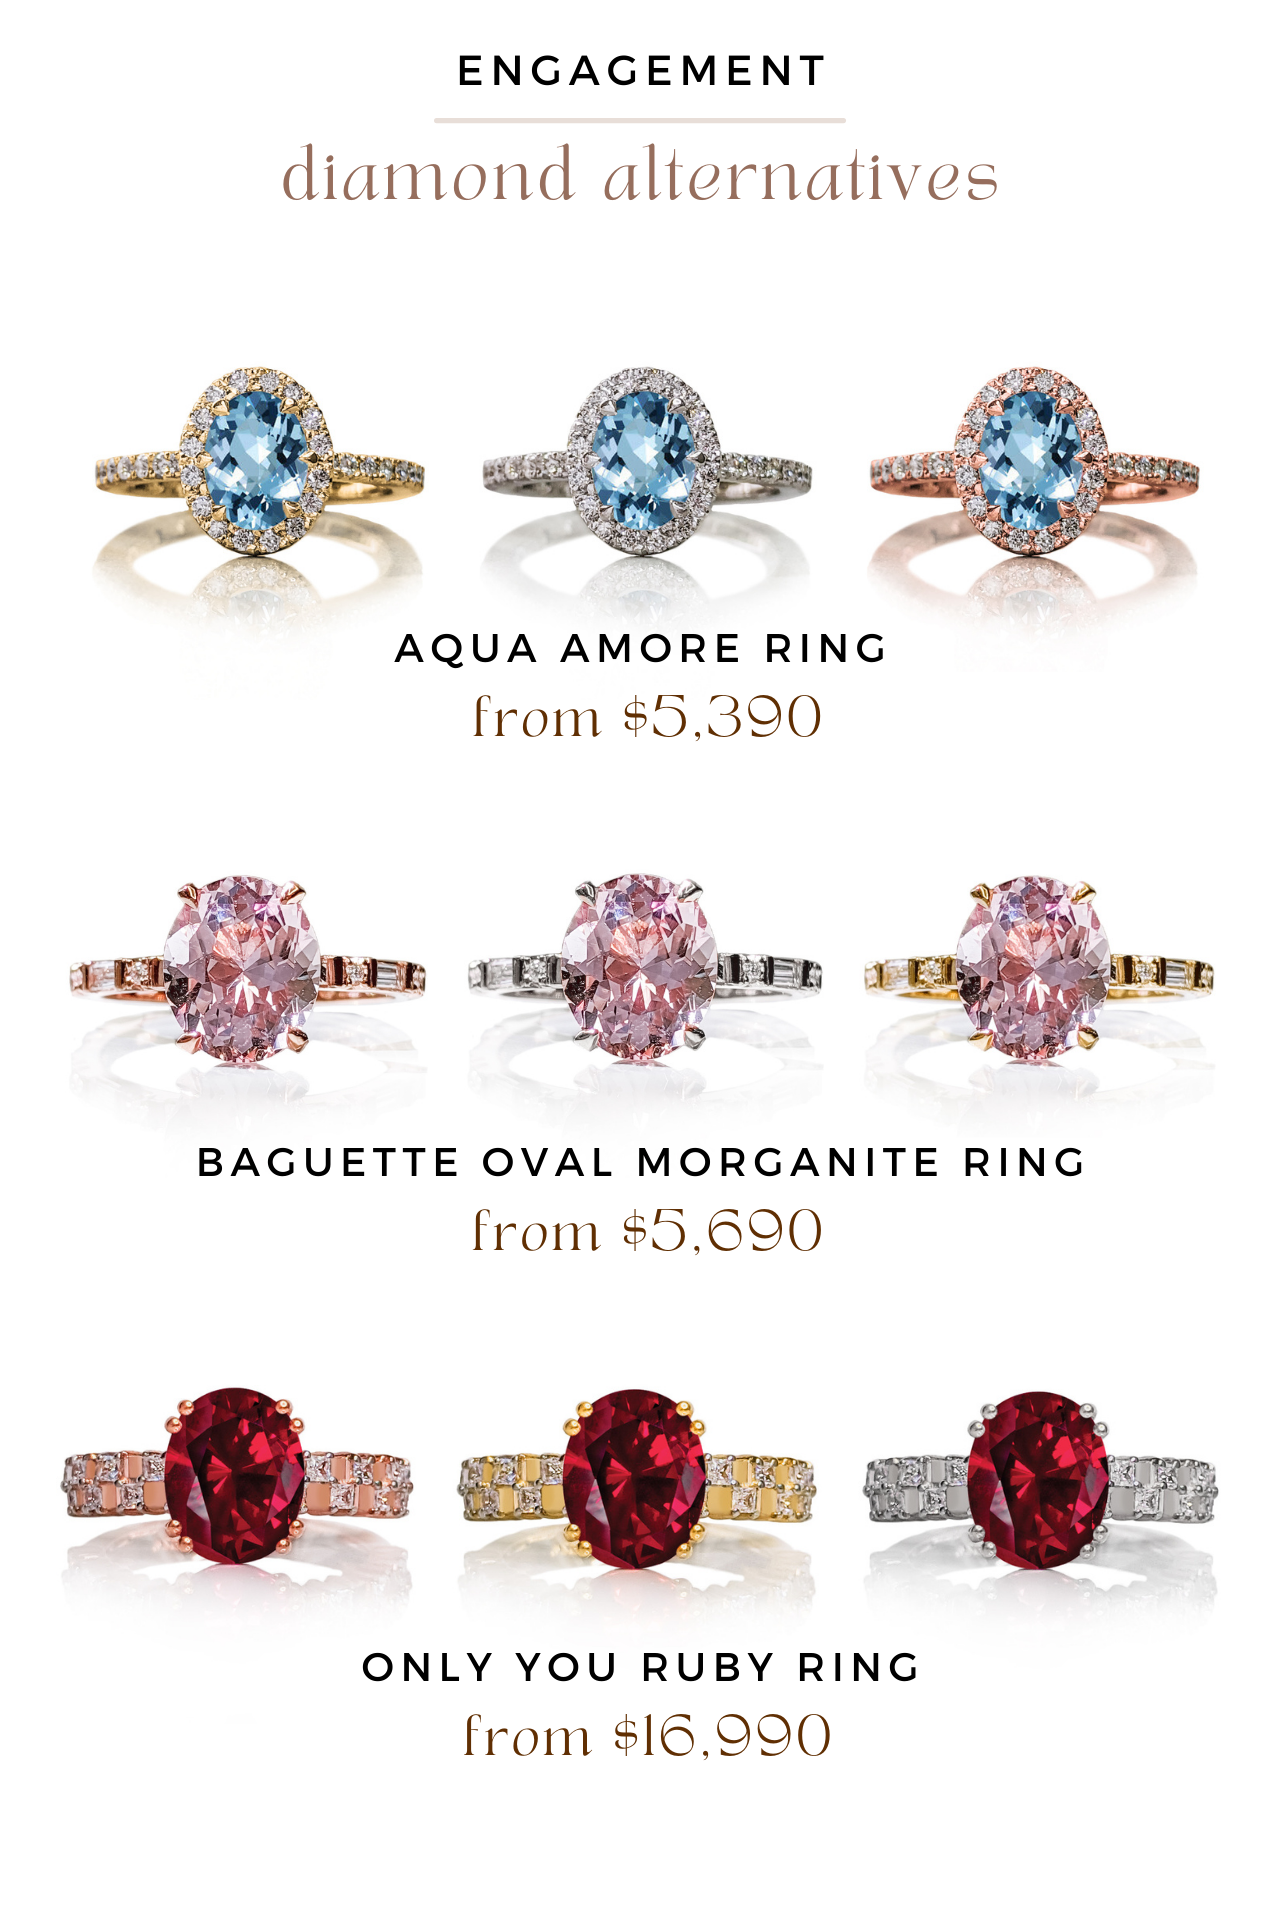 aqua amore ring, baguette oval morganite ring, only you ruby ring